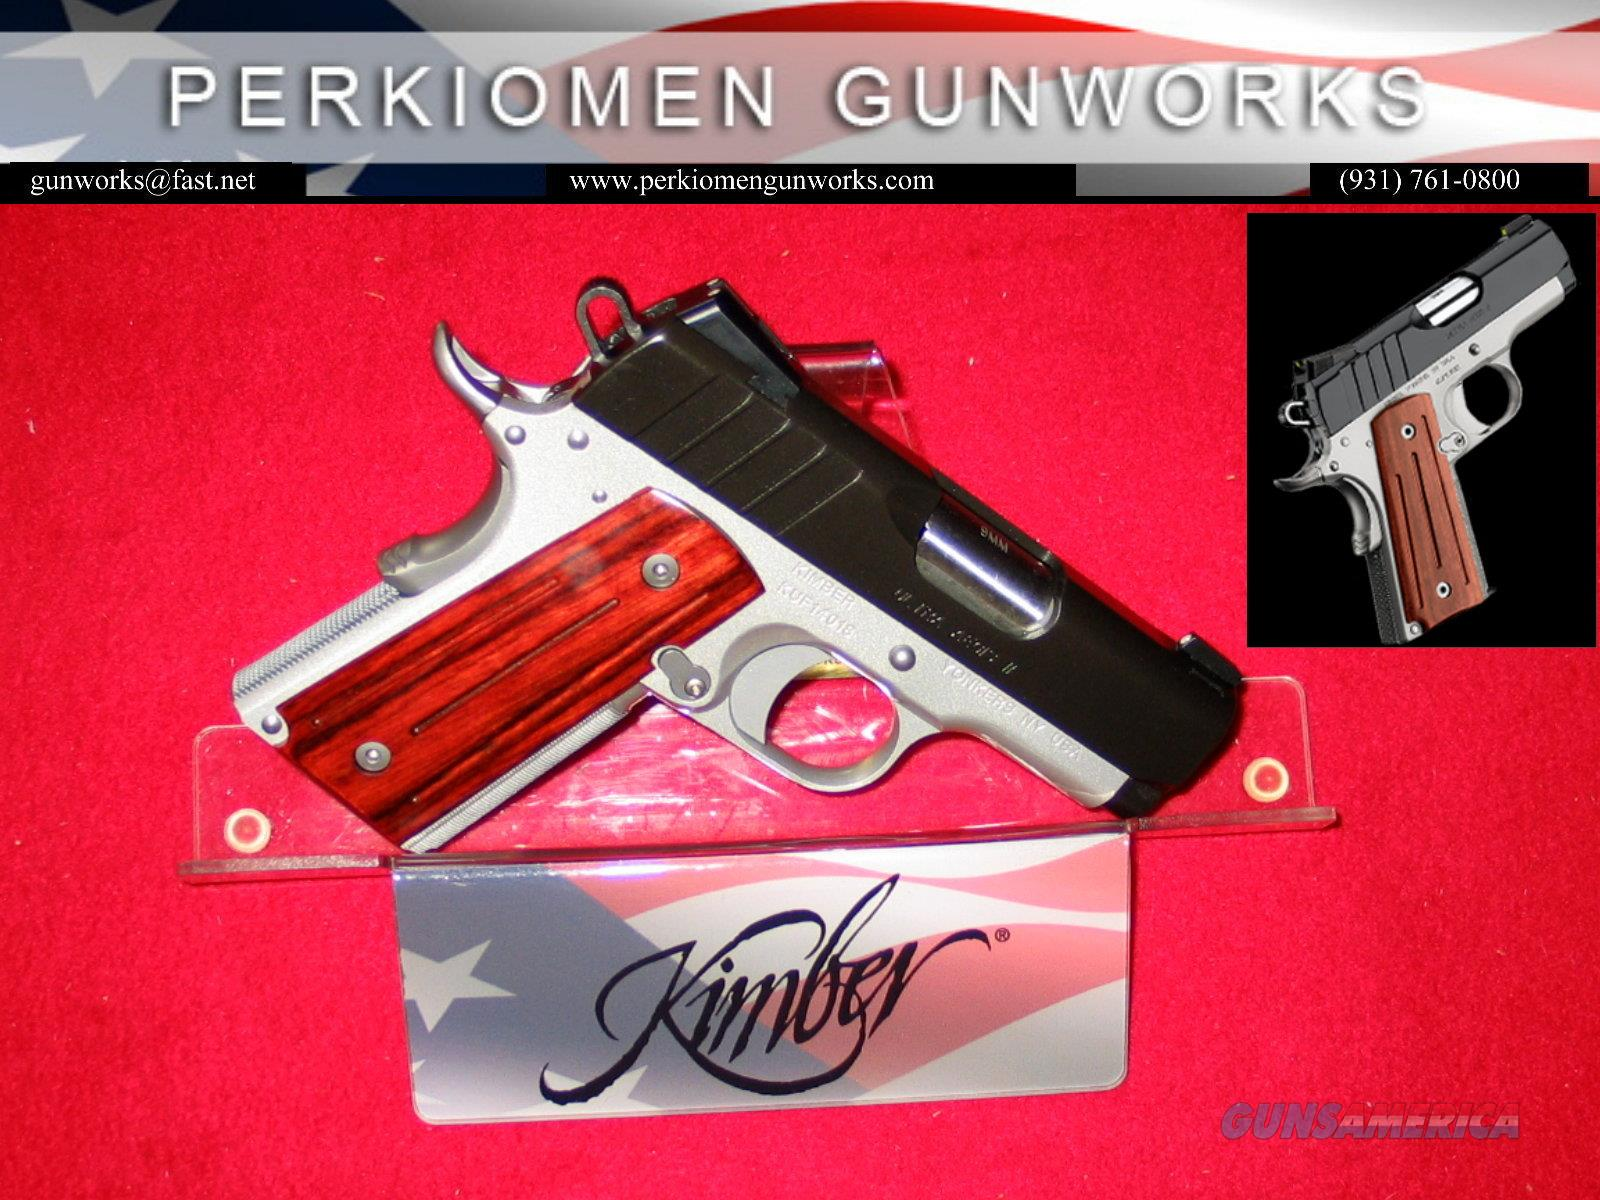 Ultra AGEIS, 9MM, 3' w/Night sights - New in Box, Discontinued and on Closeout.  Guns > Pistols > Kimber of America Pistols